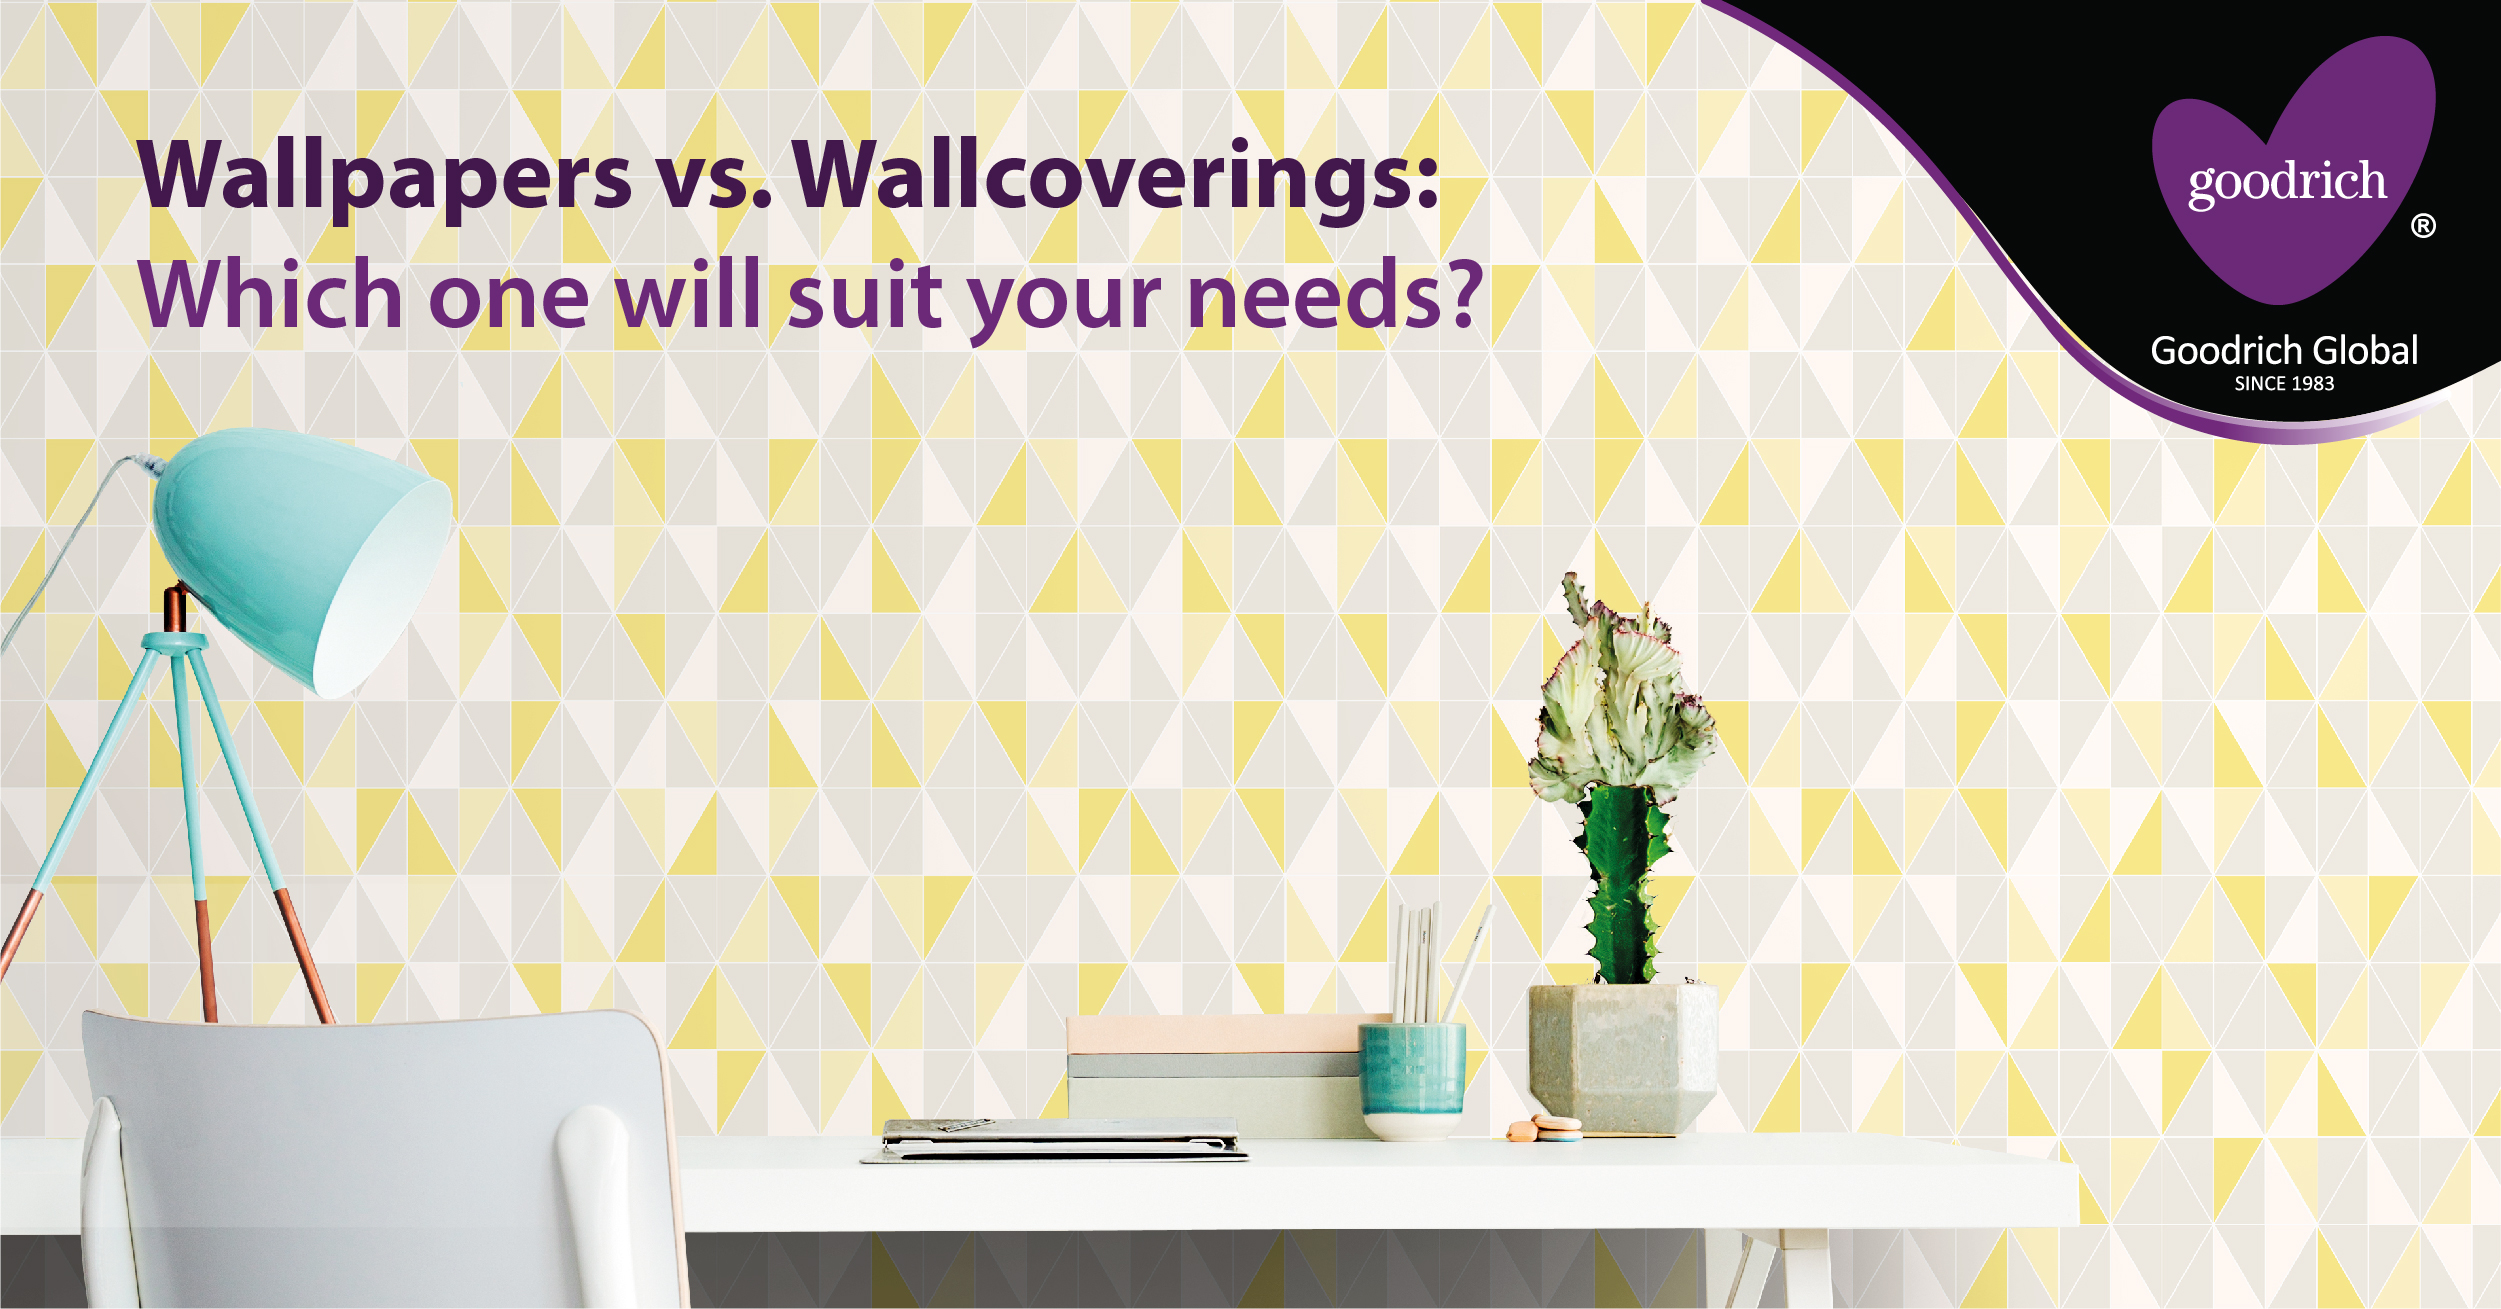 Wallpapers-vs.-Wallcoverings.-Which-one-will-suit-your-needs Wallpapers vs. Wallcoverings: Which one will suit your needs?